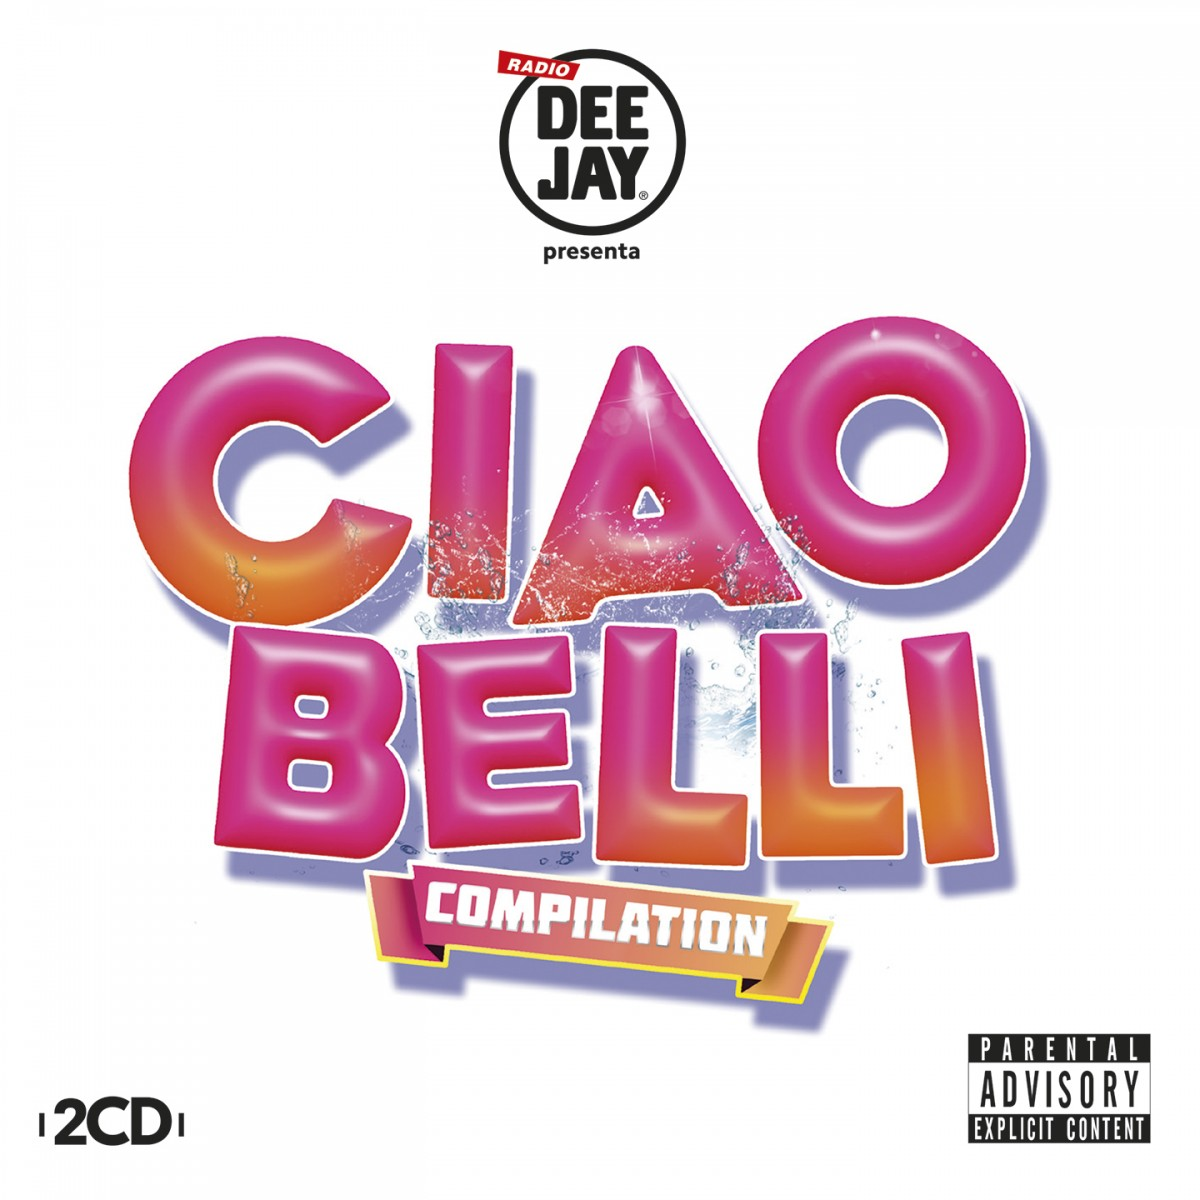 CIAO BELLI COMPILATION